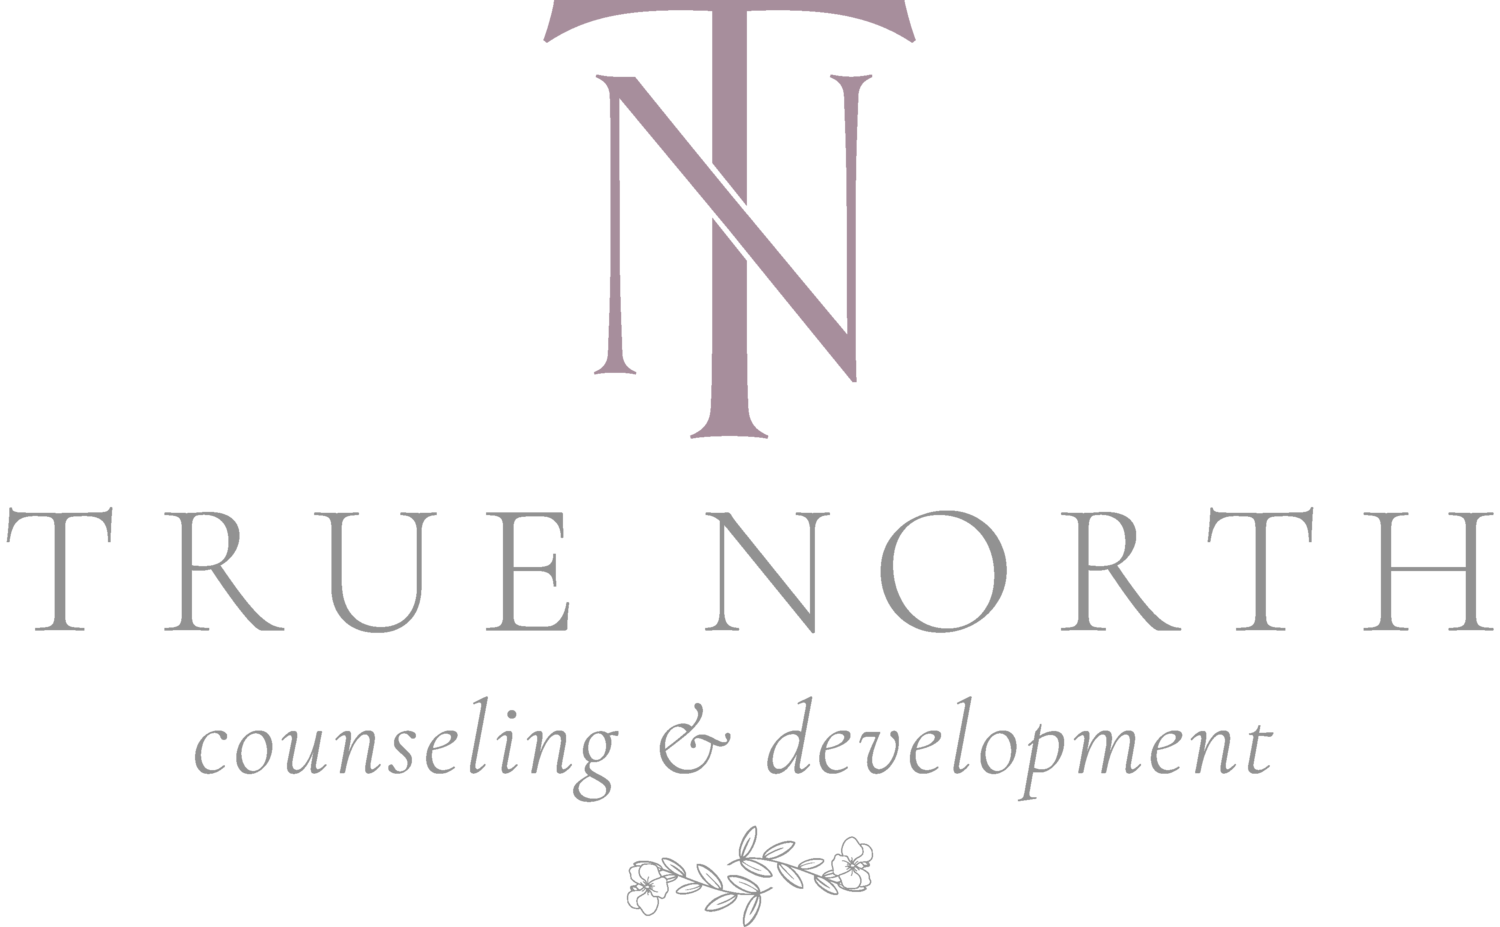 True North Counseling and Development